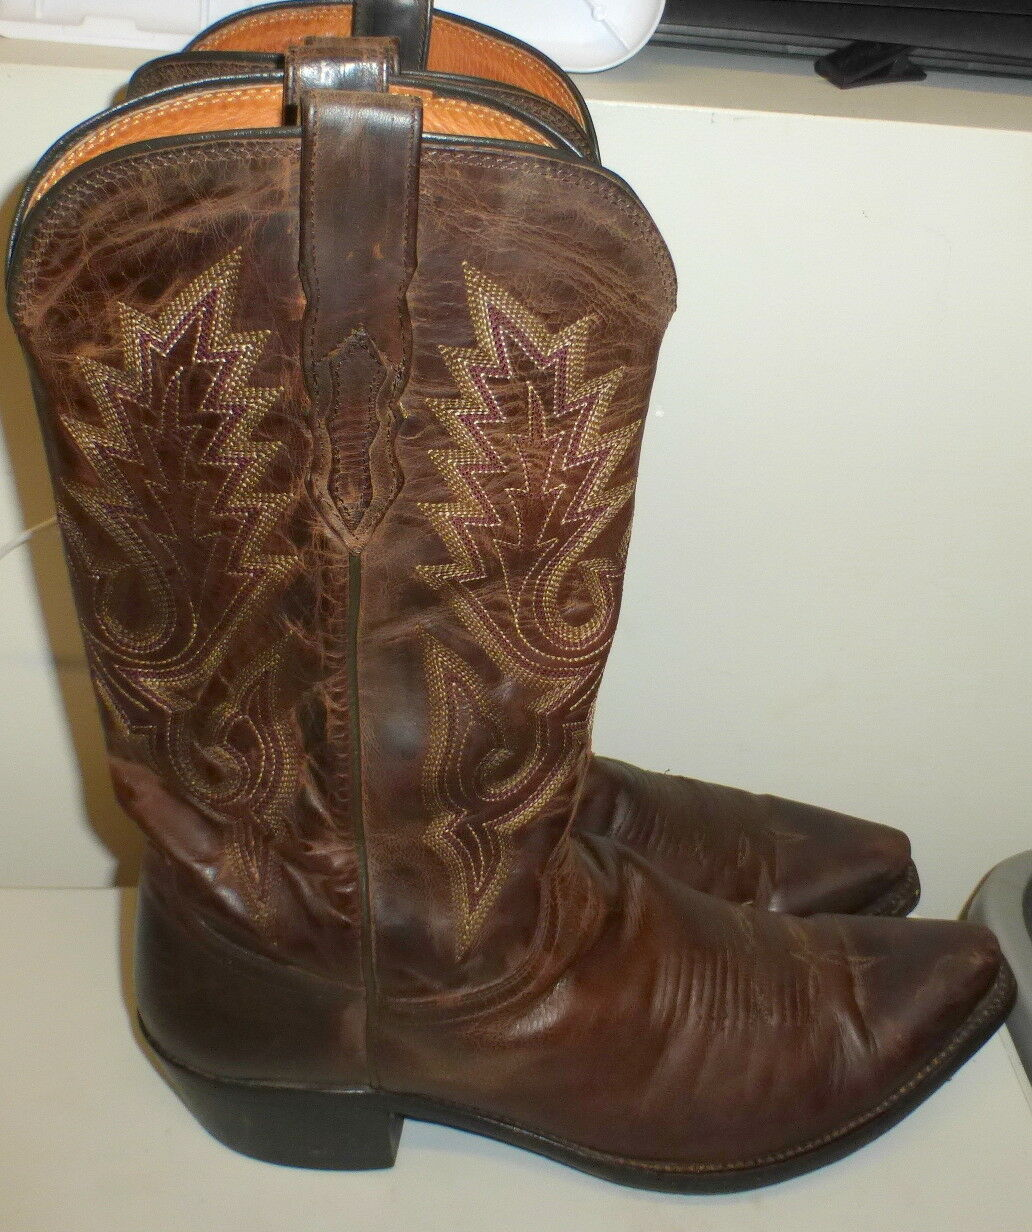 LUCCHESE M1002 CLASSICS LEWIS MADRAS GOAT LEATHER WESTERN COWBOY BOOTS 9.5D